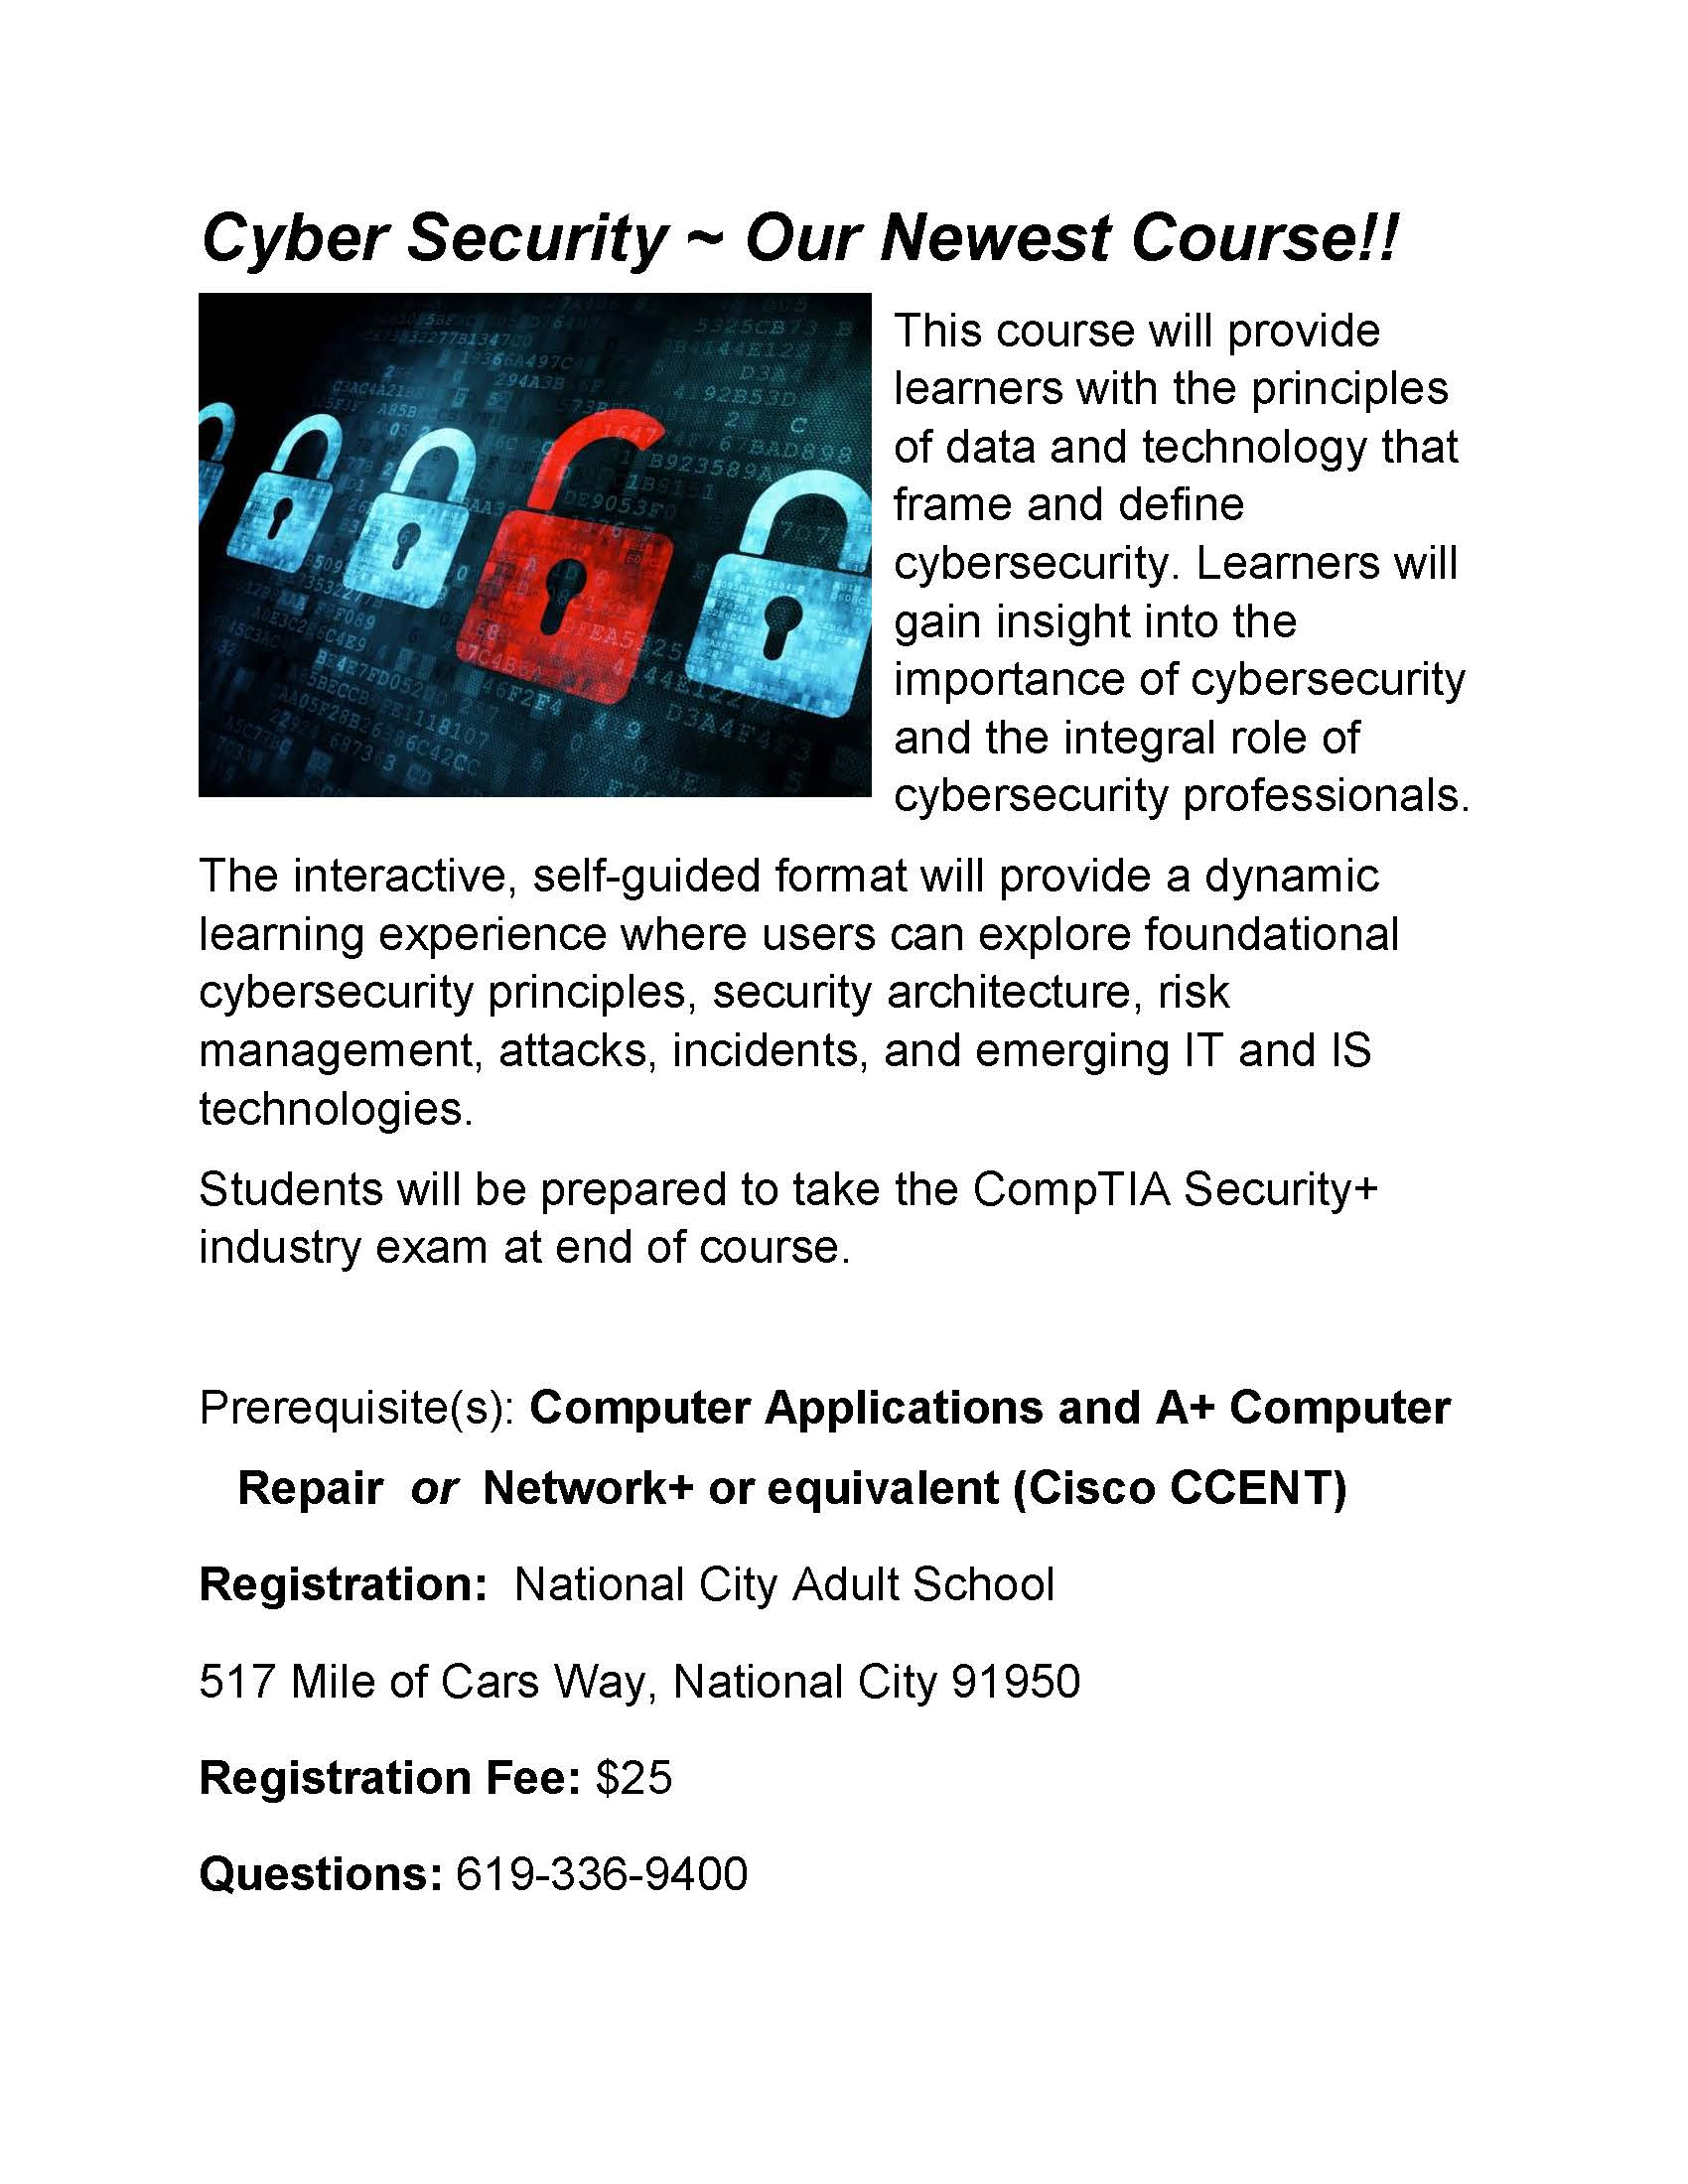 New Cyber Security Course at National City Adult School